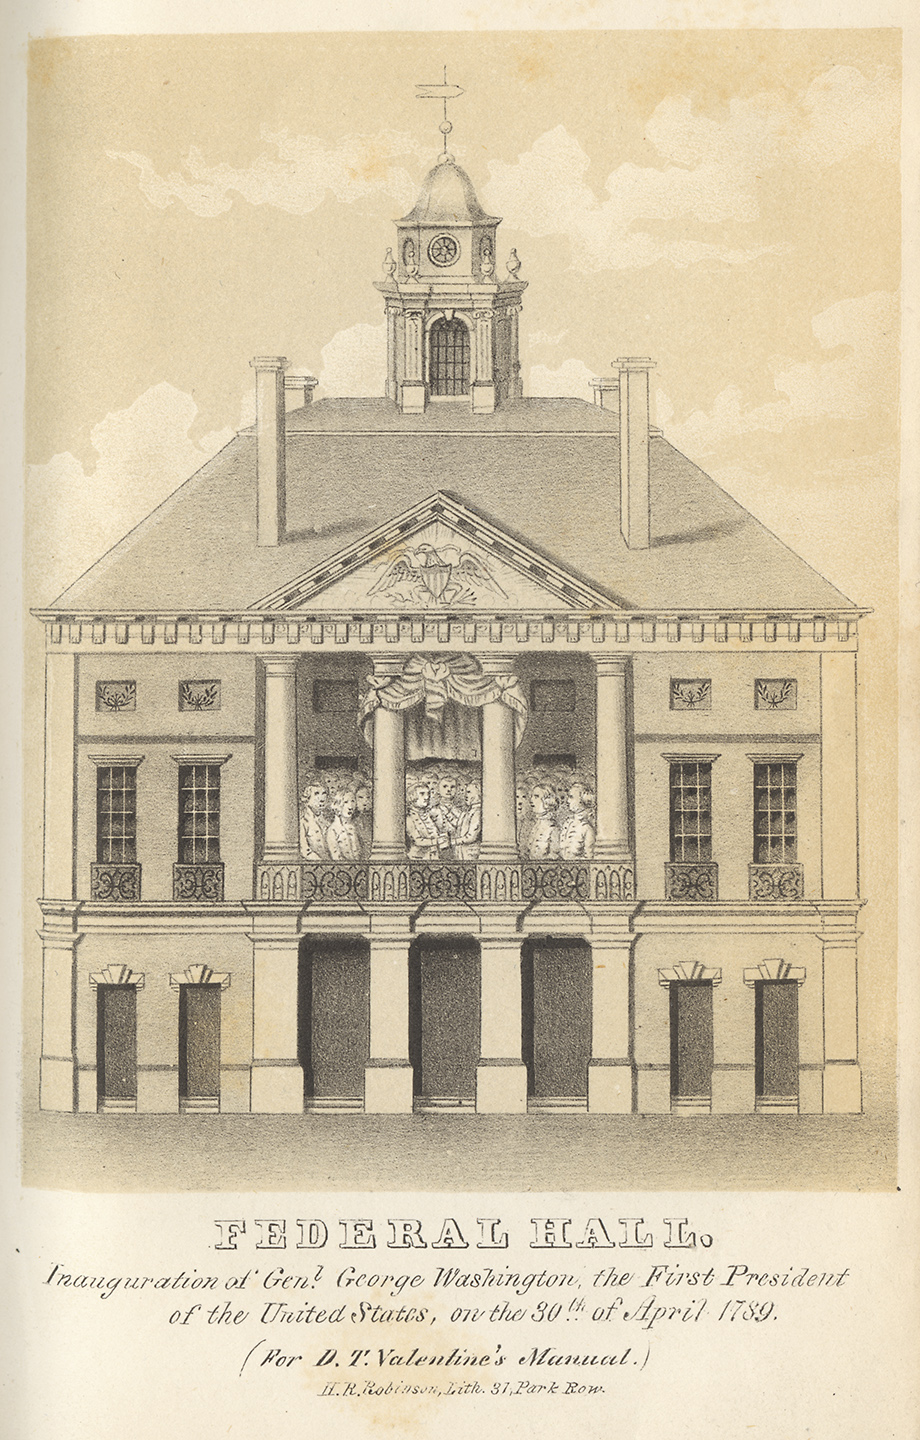 Text beneath drawing reads:  Federal Hall, Inauguration of General George Washington, the First President of the United States, on the 30th of April 1789. H.R. Robinson for D.T. Valentine's Manual, 1849. NYC Municipal Archives.